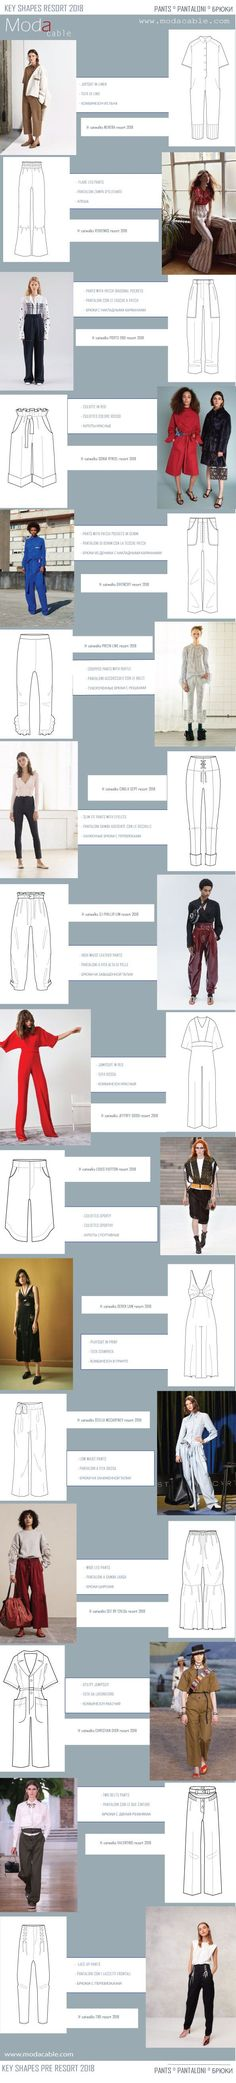 key shapes resort 2018 are alredy at modacable.com!!!! follow us for more!!!